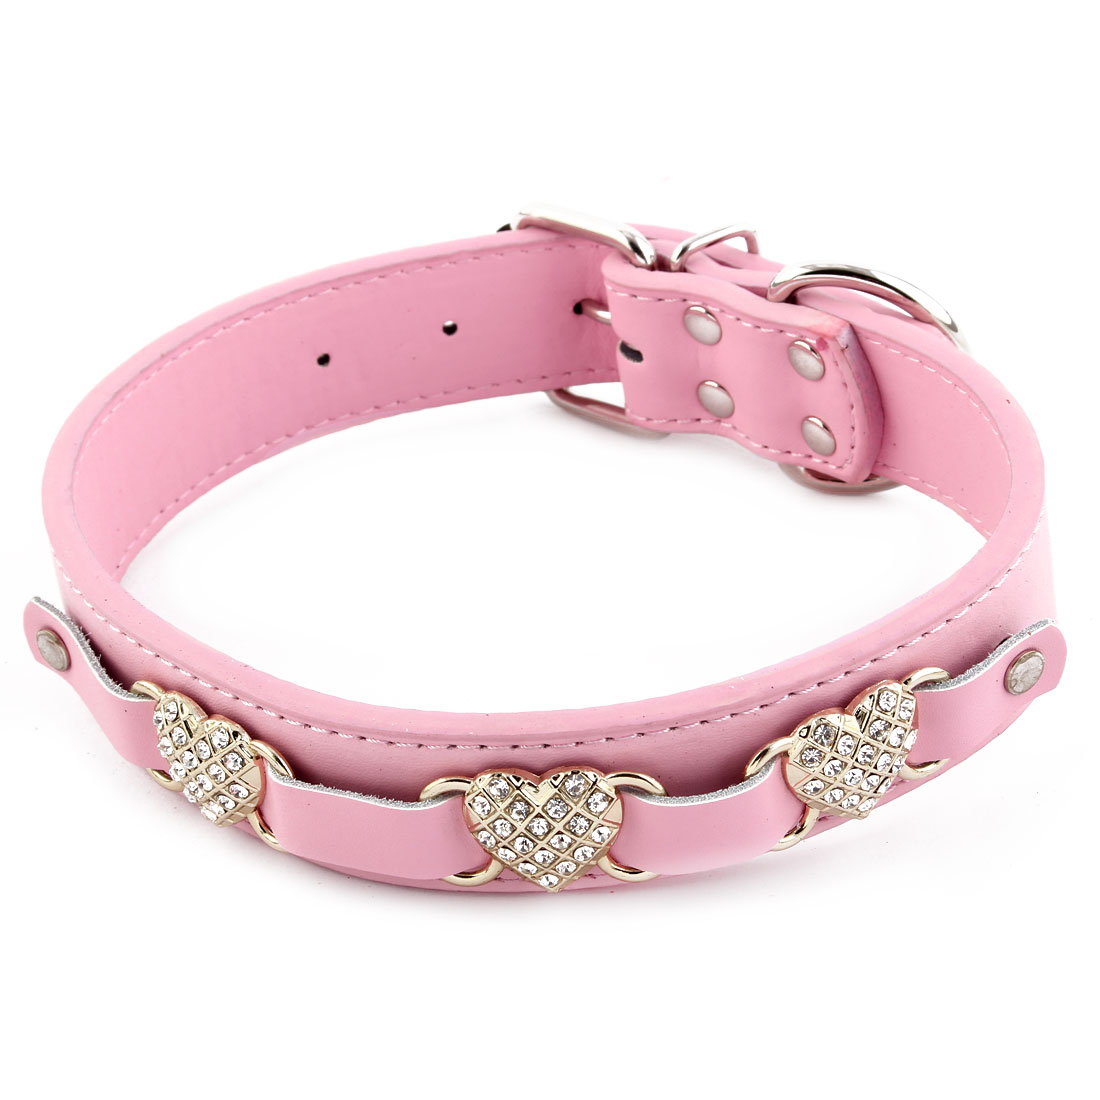 Pet Doggy Faux Leather Heart Shaped Faux Rhinestone Adjustable Neck Collar Pink